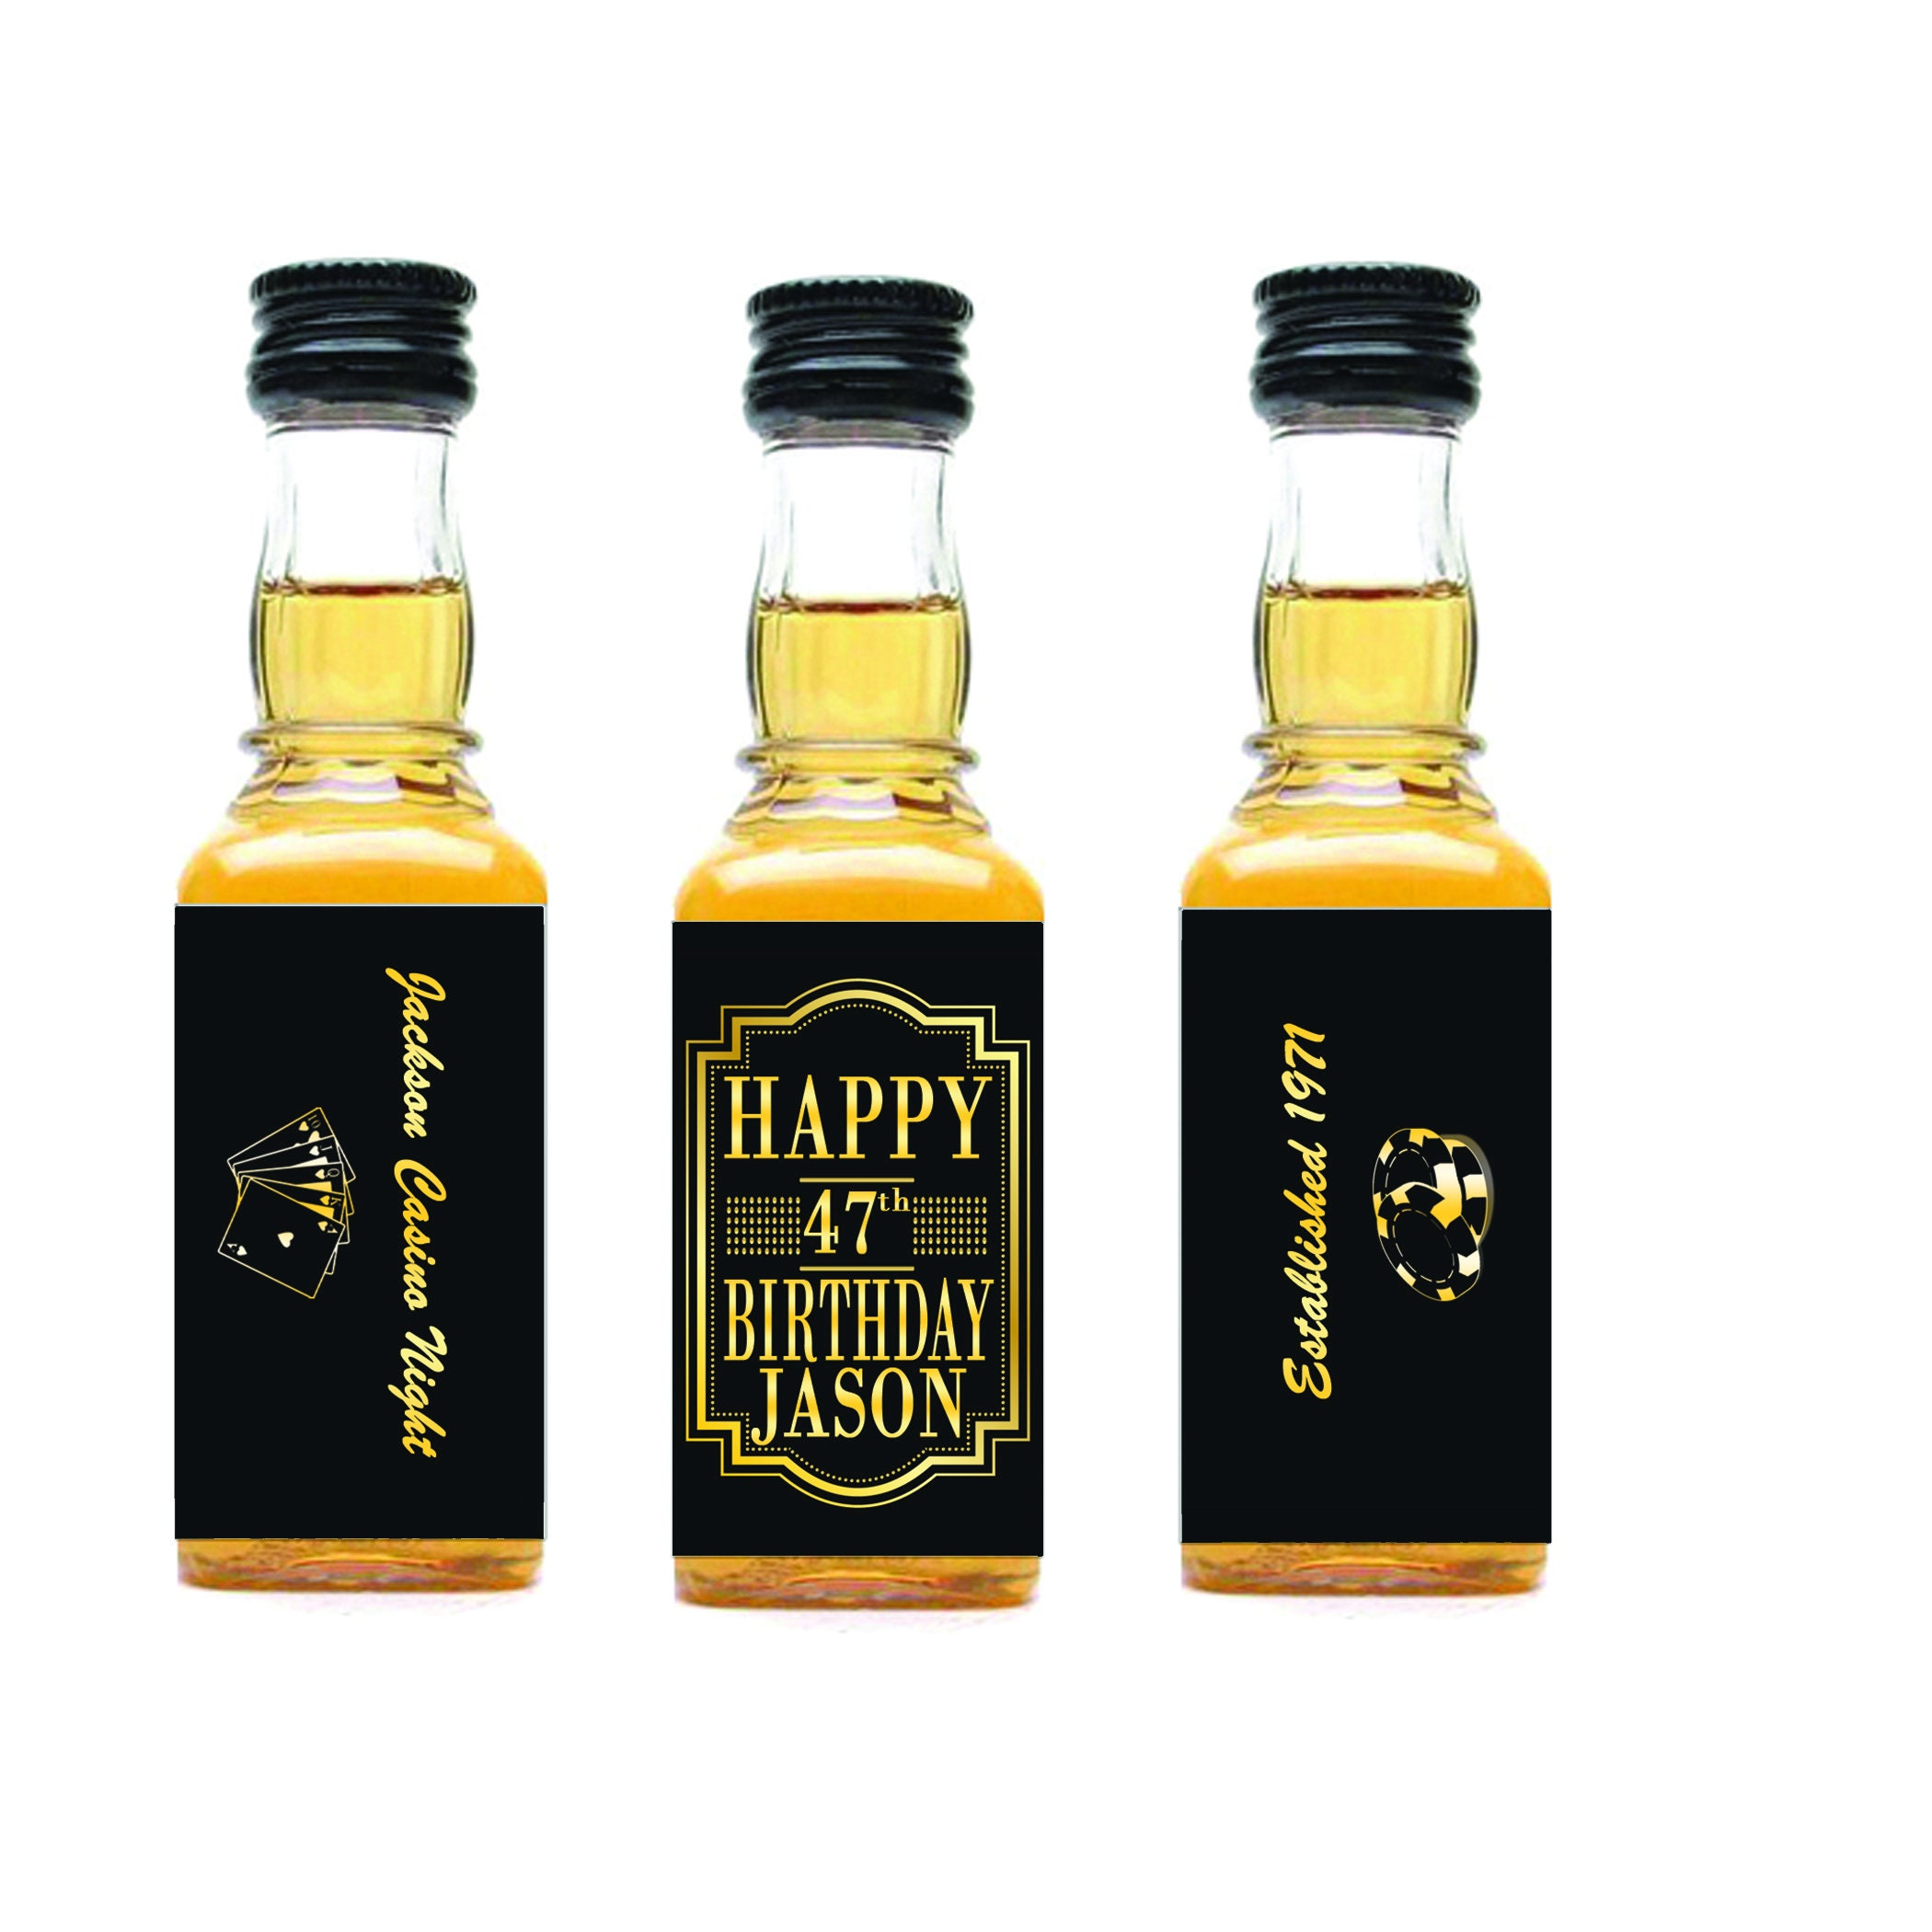 Black and Gold Birthday Mini Liquor Bottle Labels Personalized